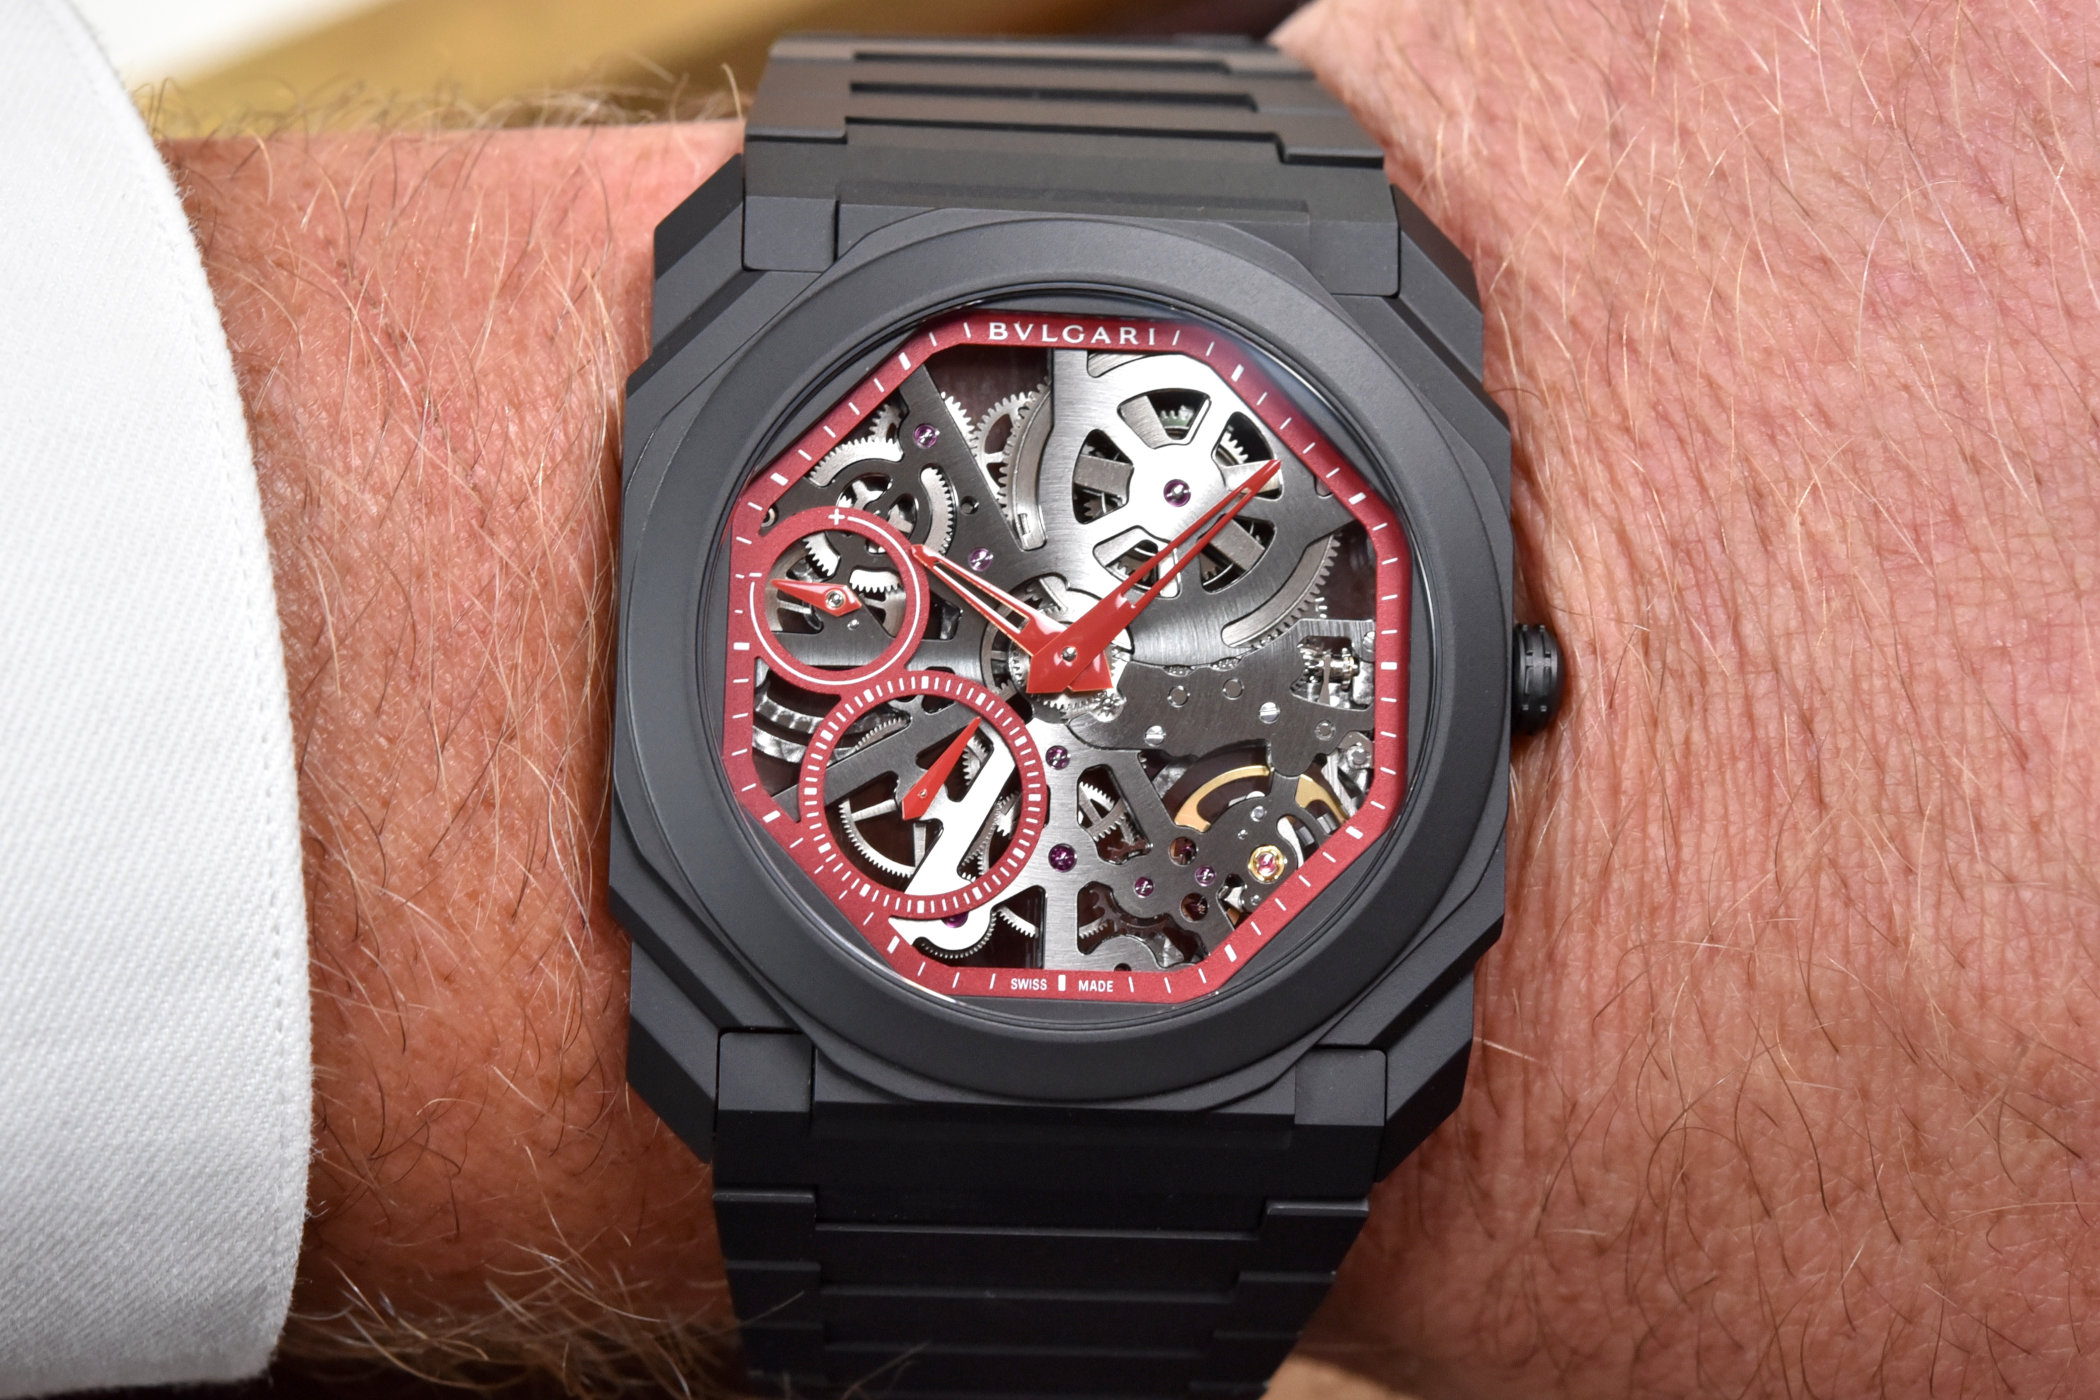 Bvlgari Octo Finissimo Skeleton Red Limited Edition Review 4